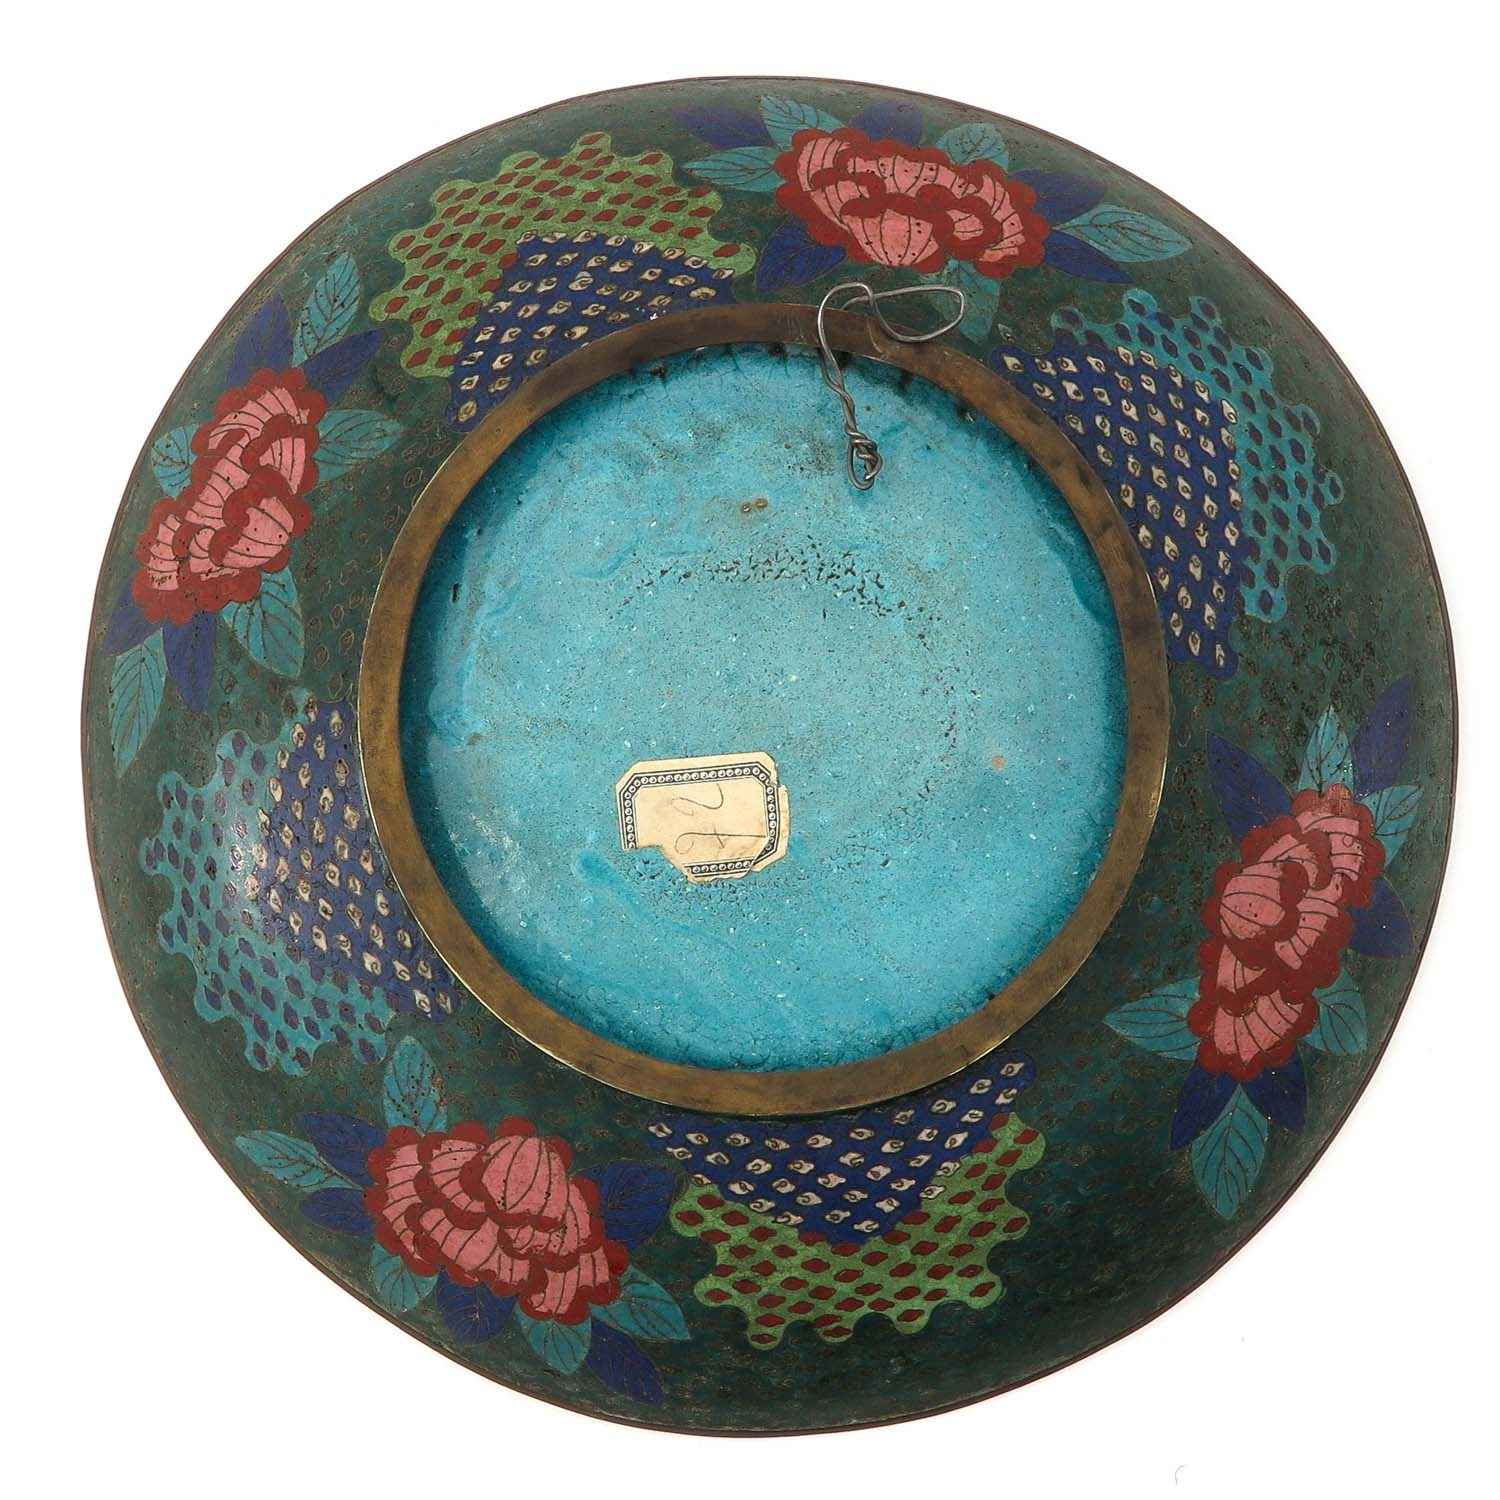 A Pair of Cloisonne Chargers - Image 4 of 10